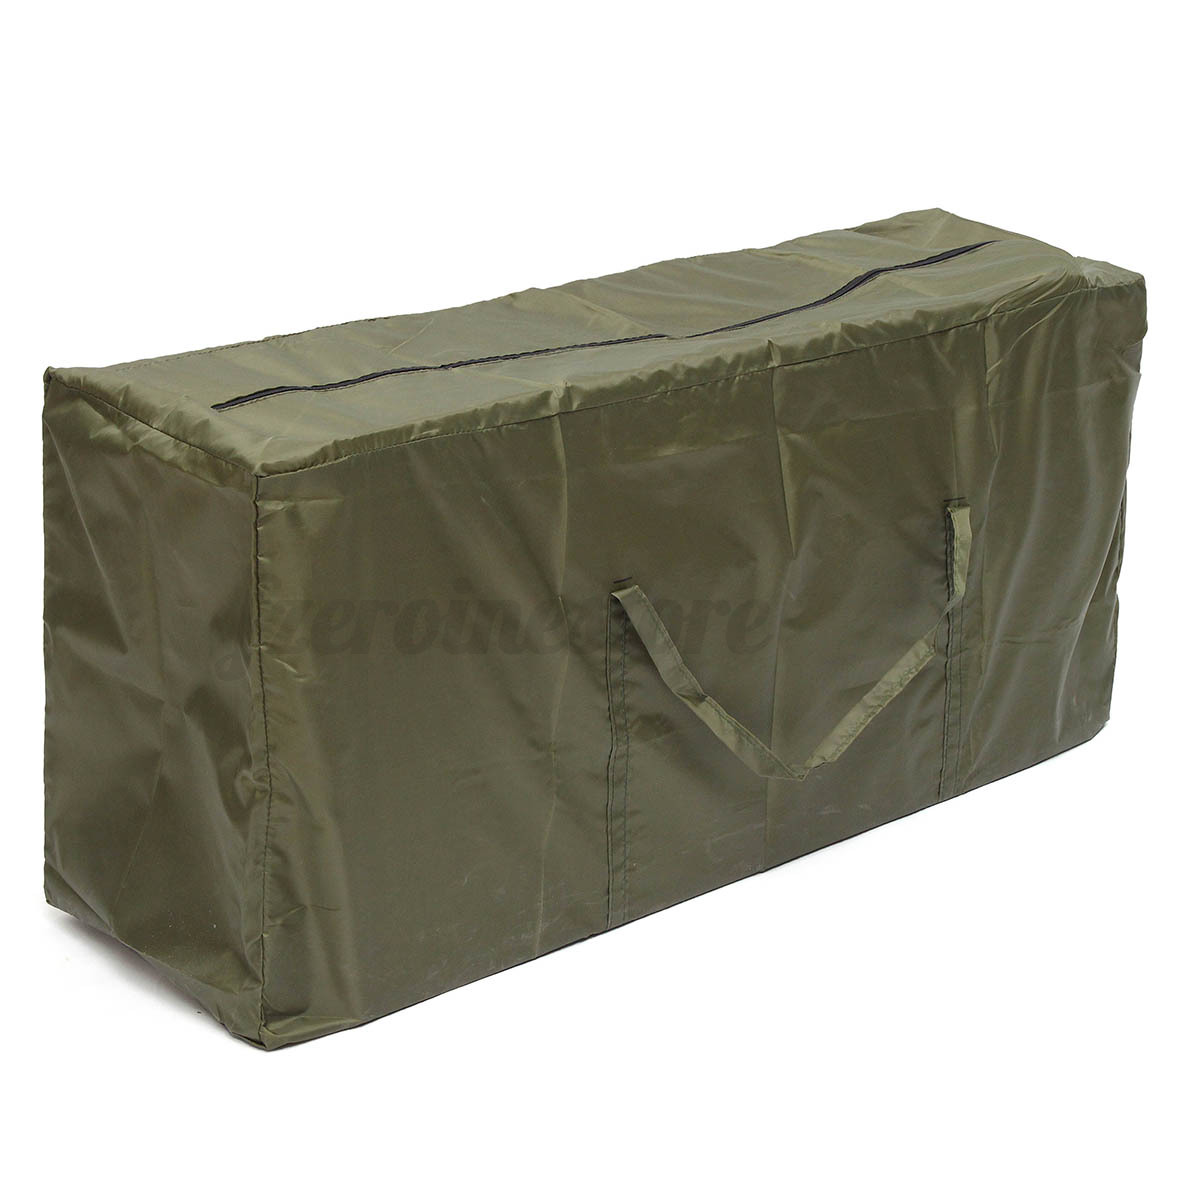 Heavy Duty Waterproof Outdoor Garden Furniture Cushion Carry Case Storage Bag